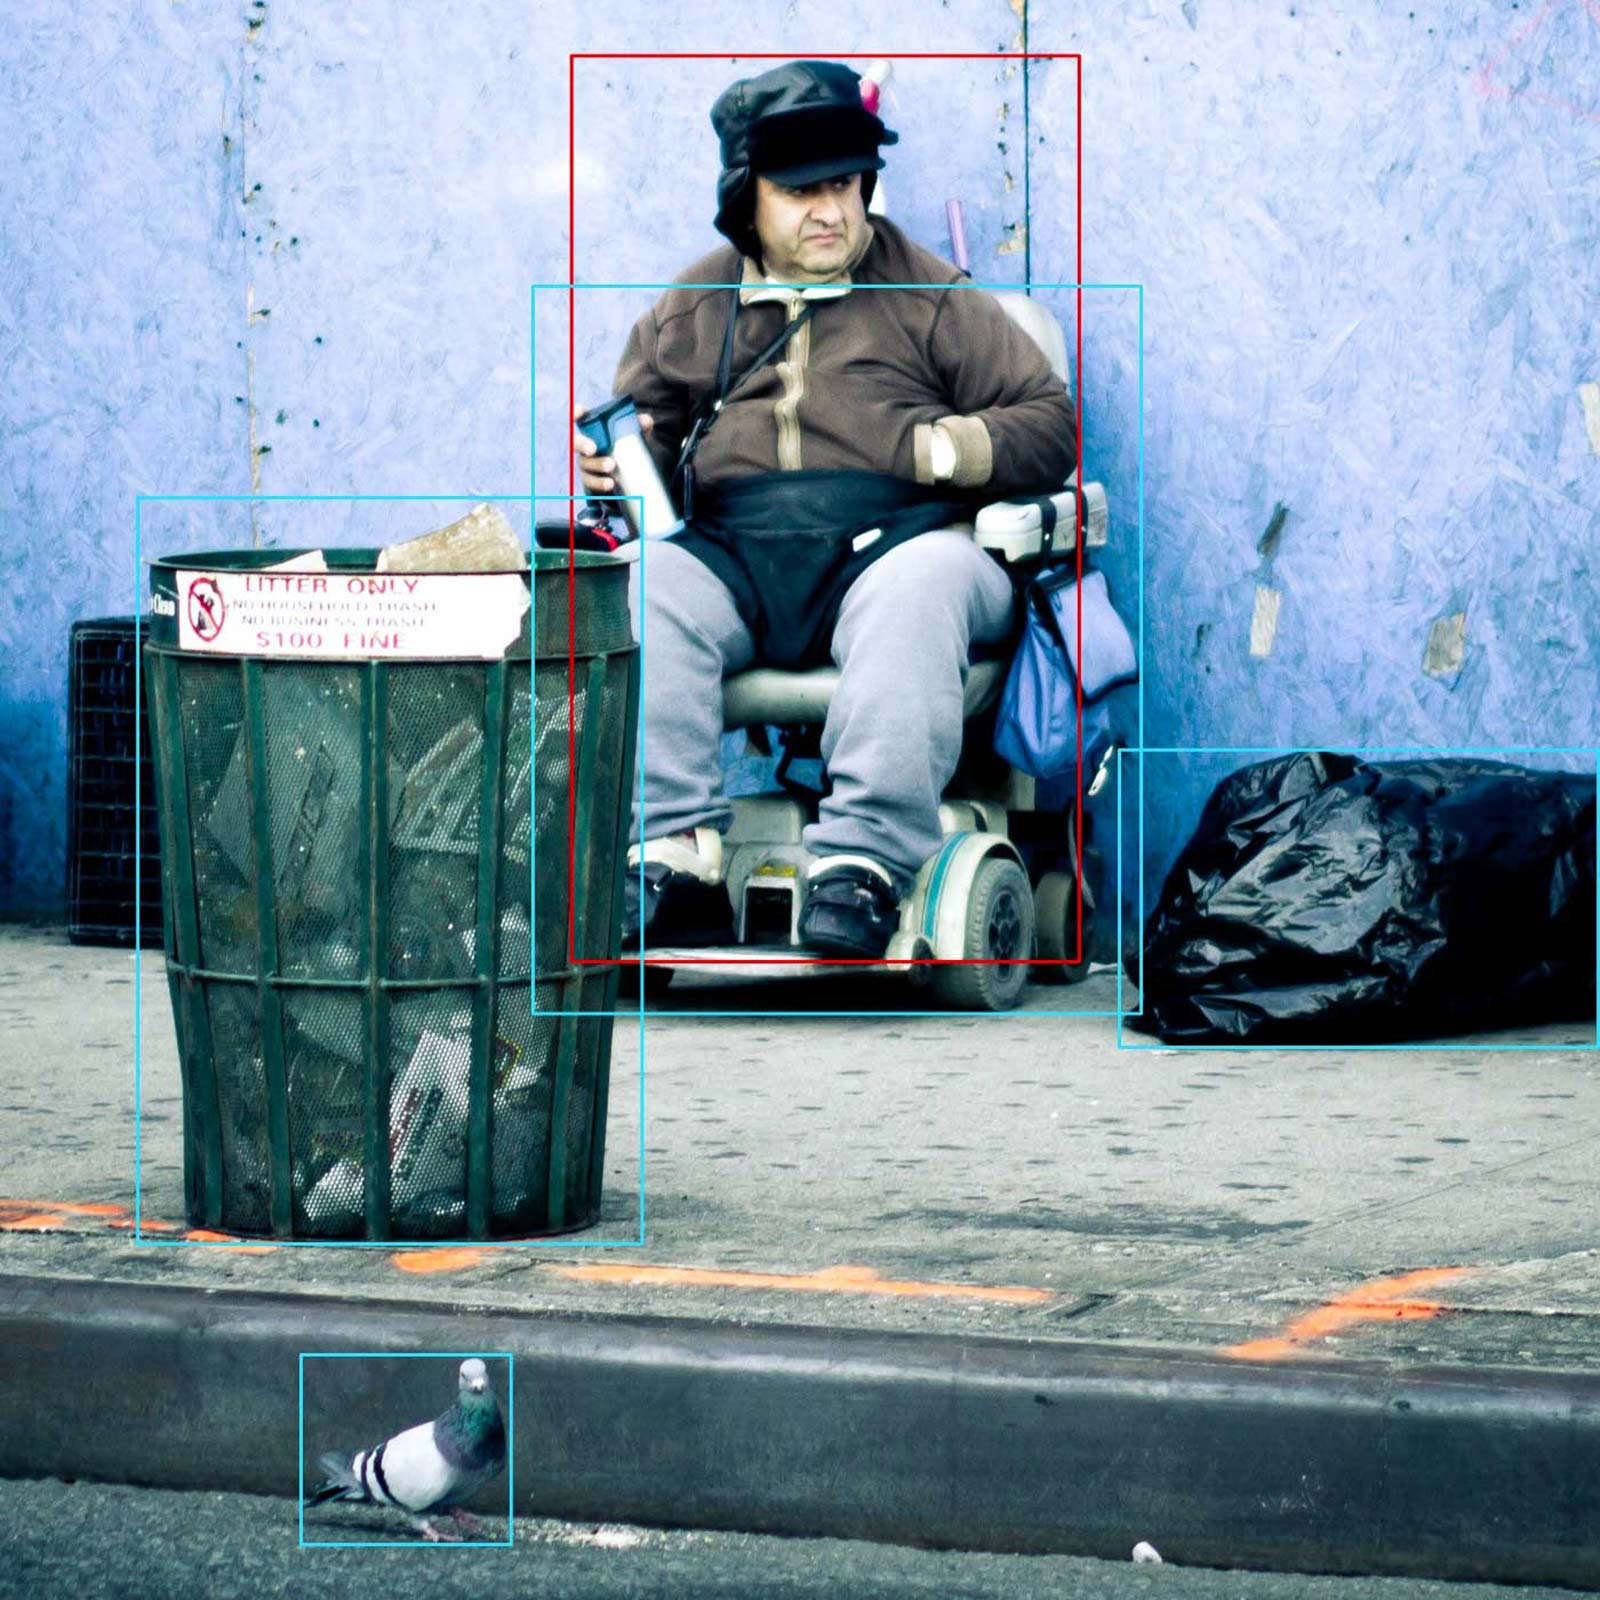 A man in a wheelchair, annotated image with wrong classification